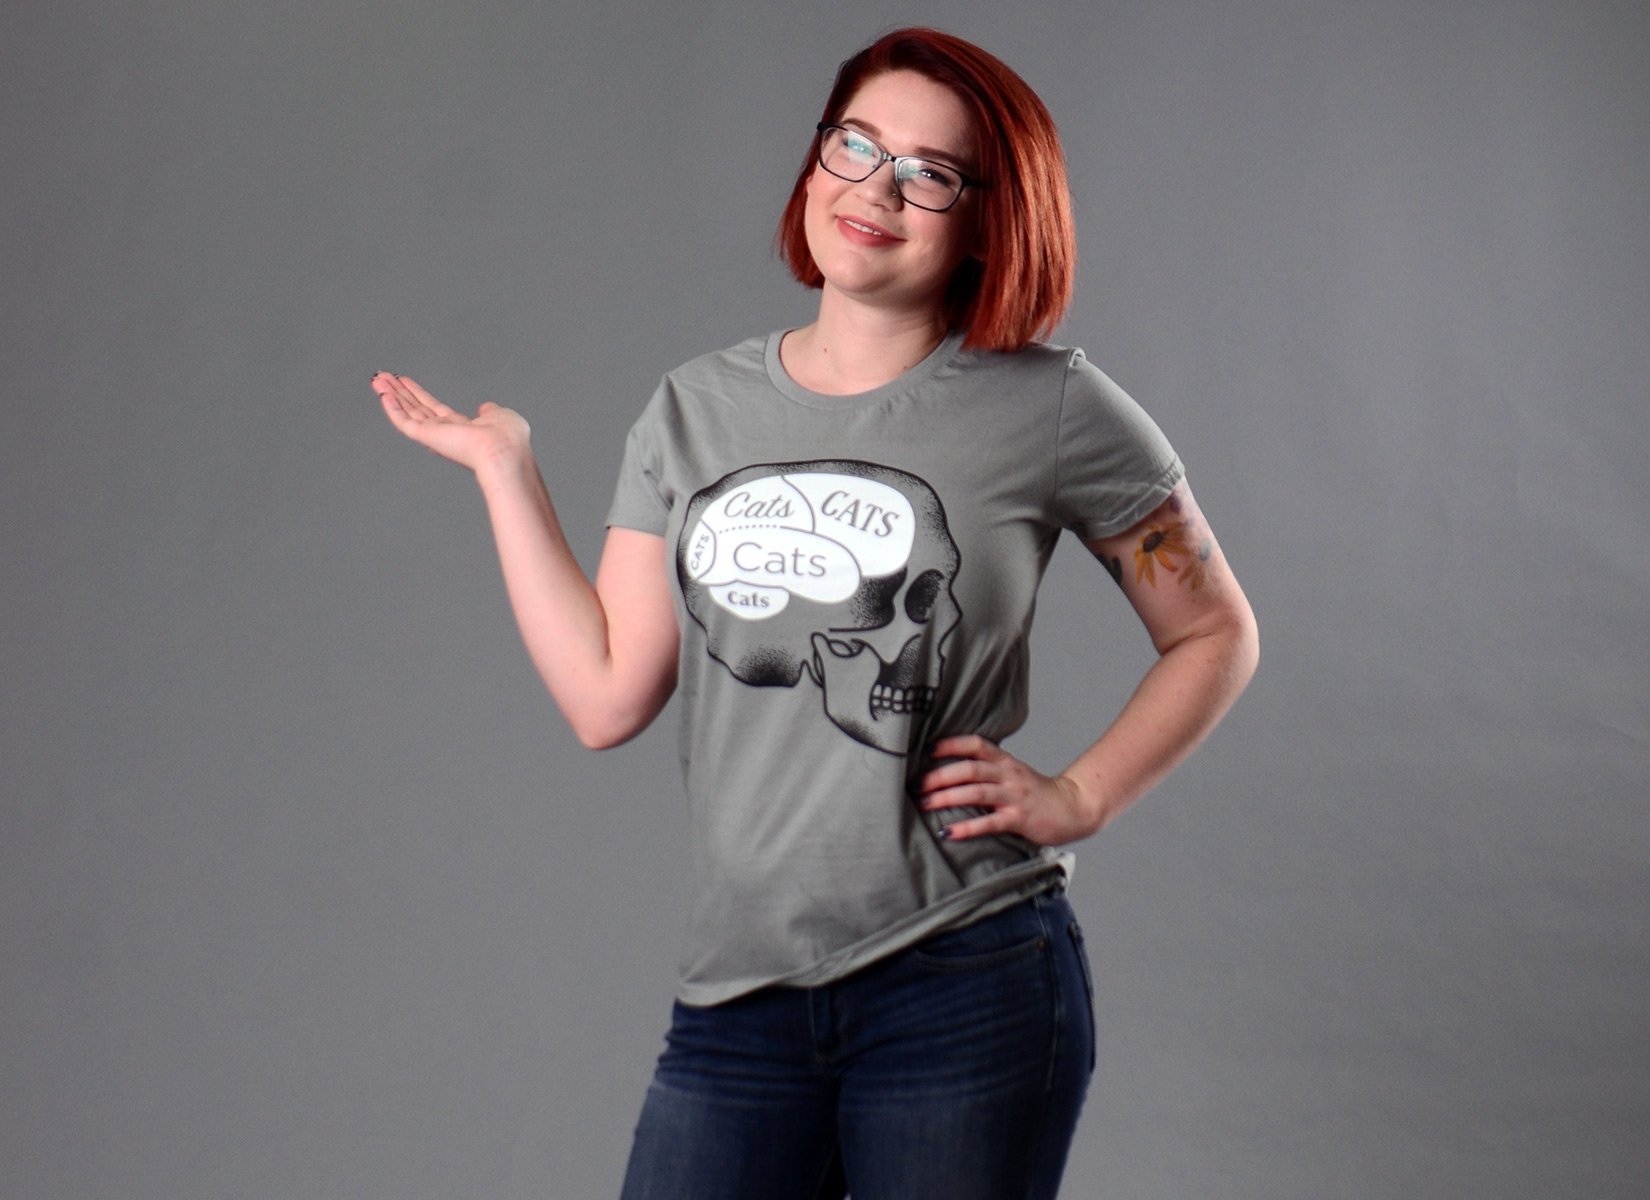 Cats On The Brain on Womens T-Shirt